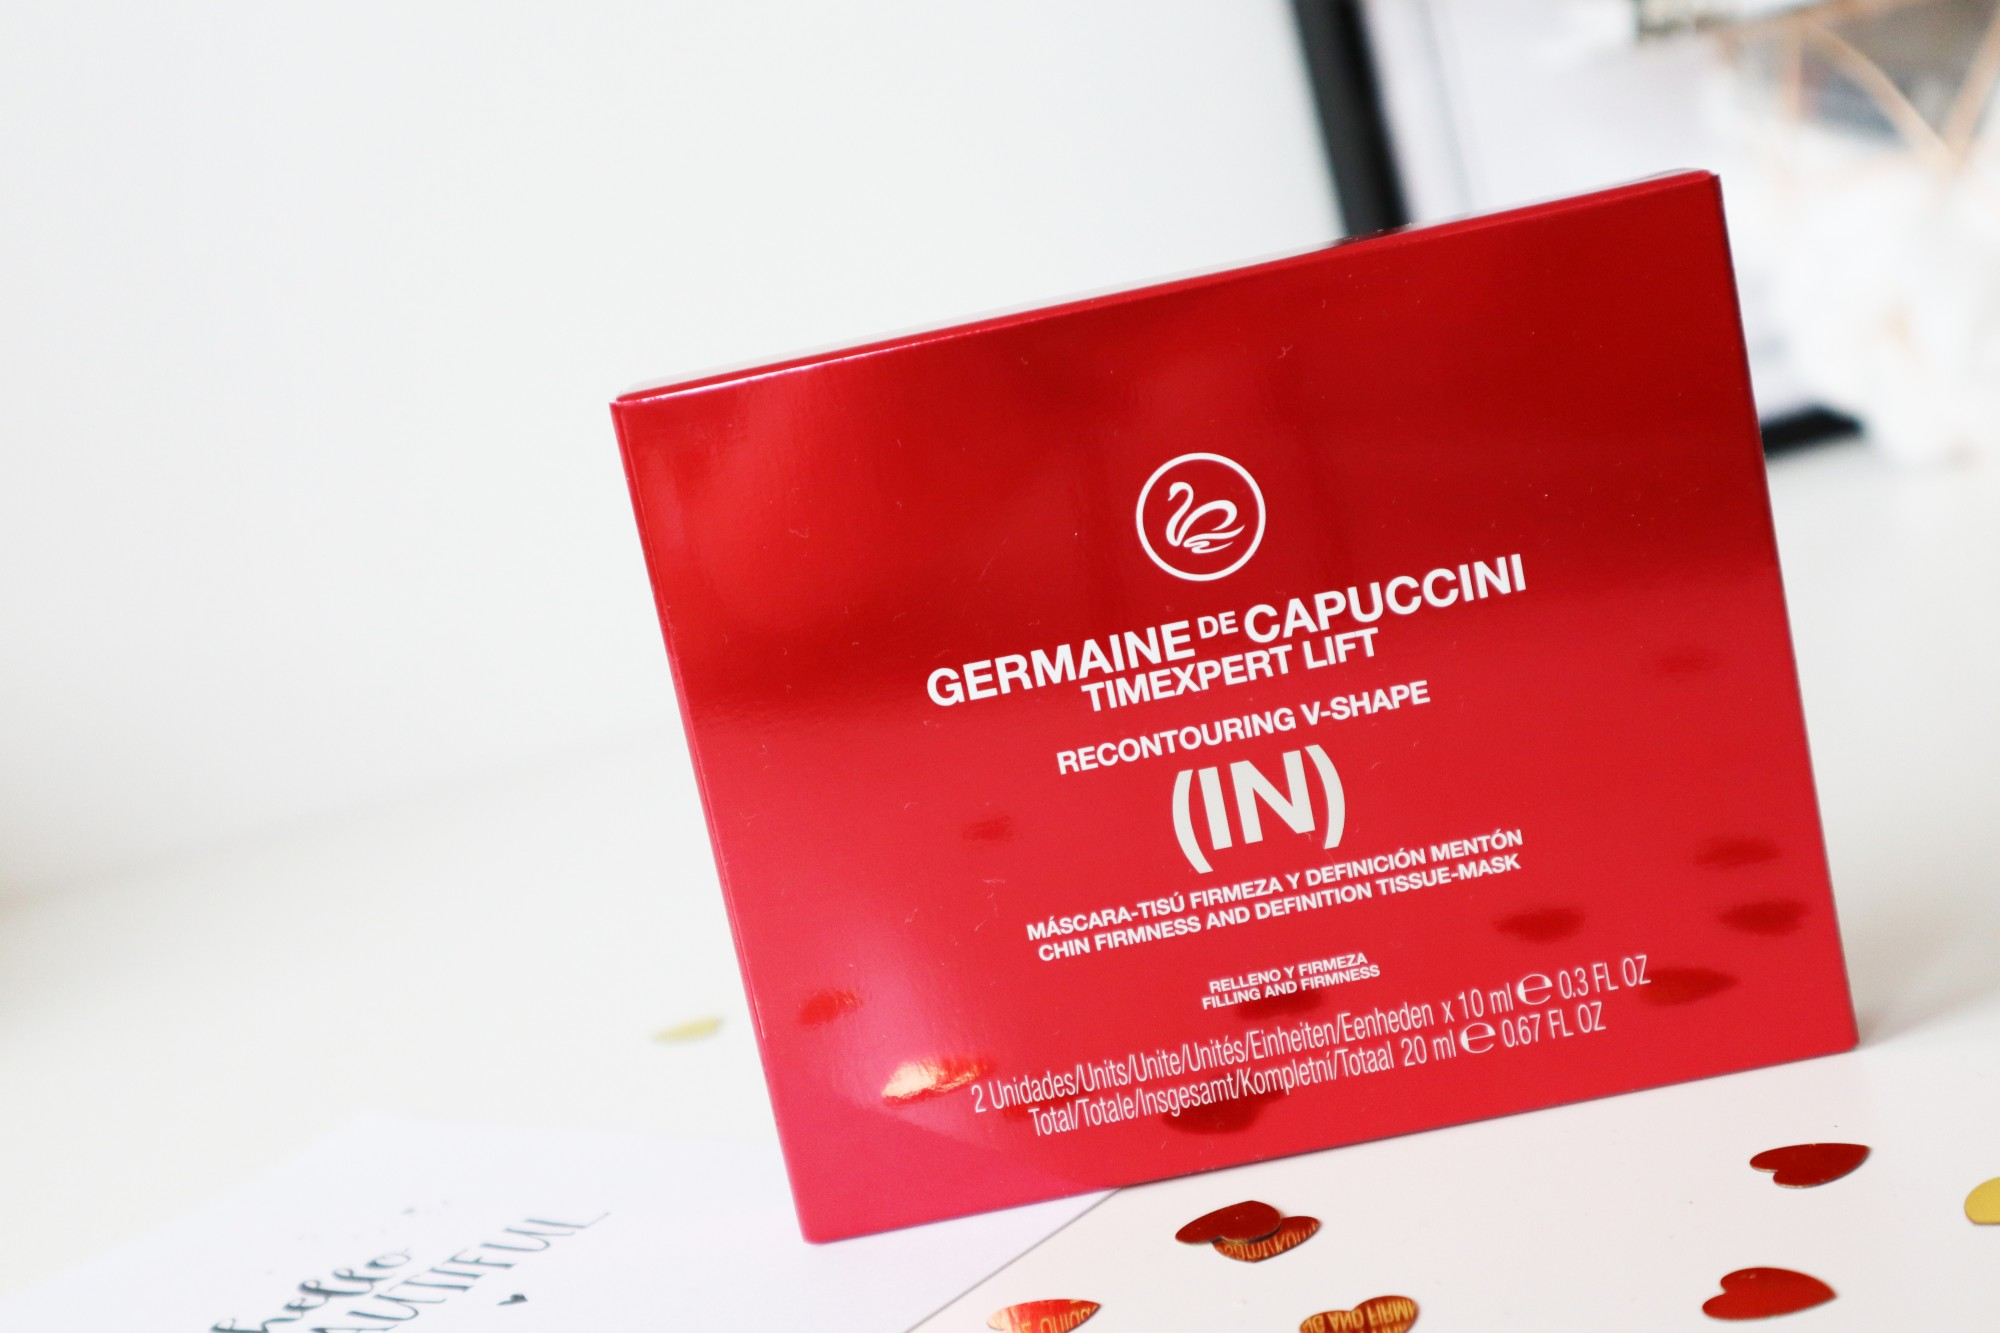 Germaine de Capuccini Recontouring V-Shape Masker Timexpert Lift(in)